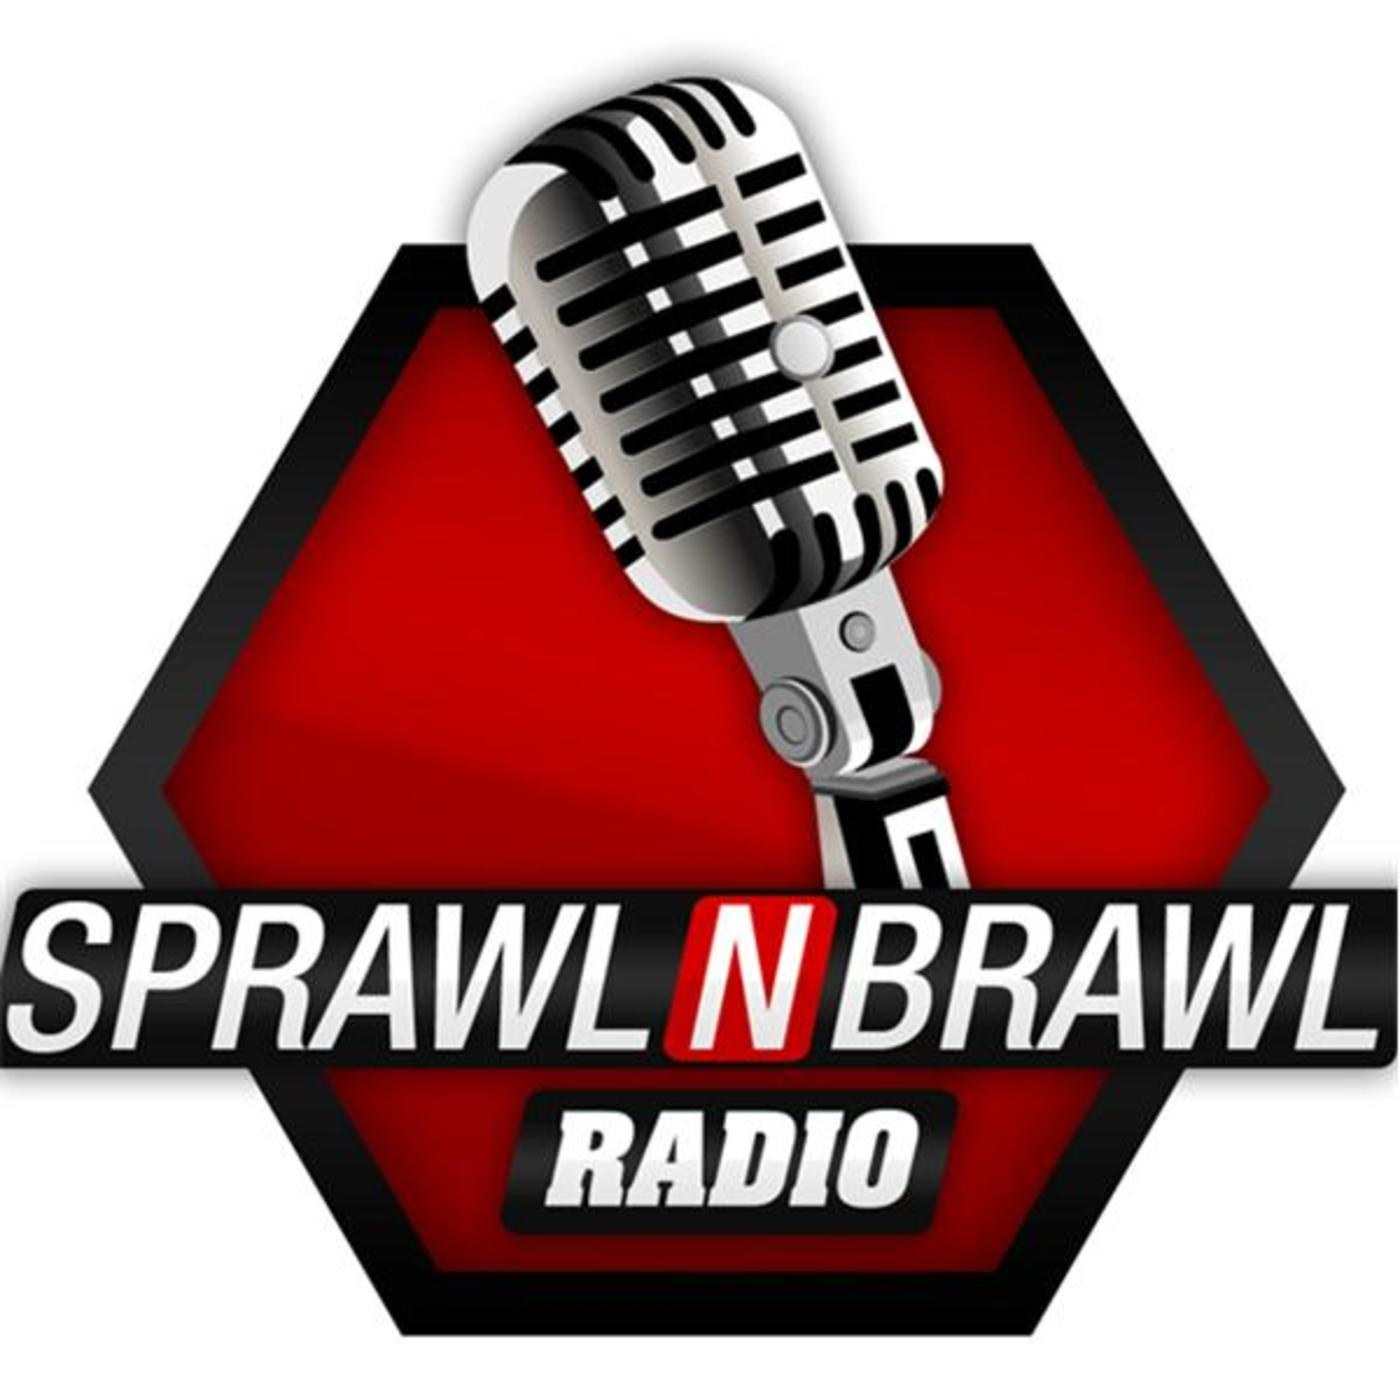 Sprawl-N-Brawl Radio